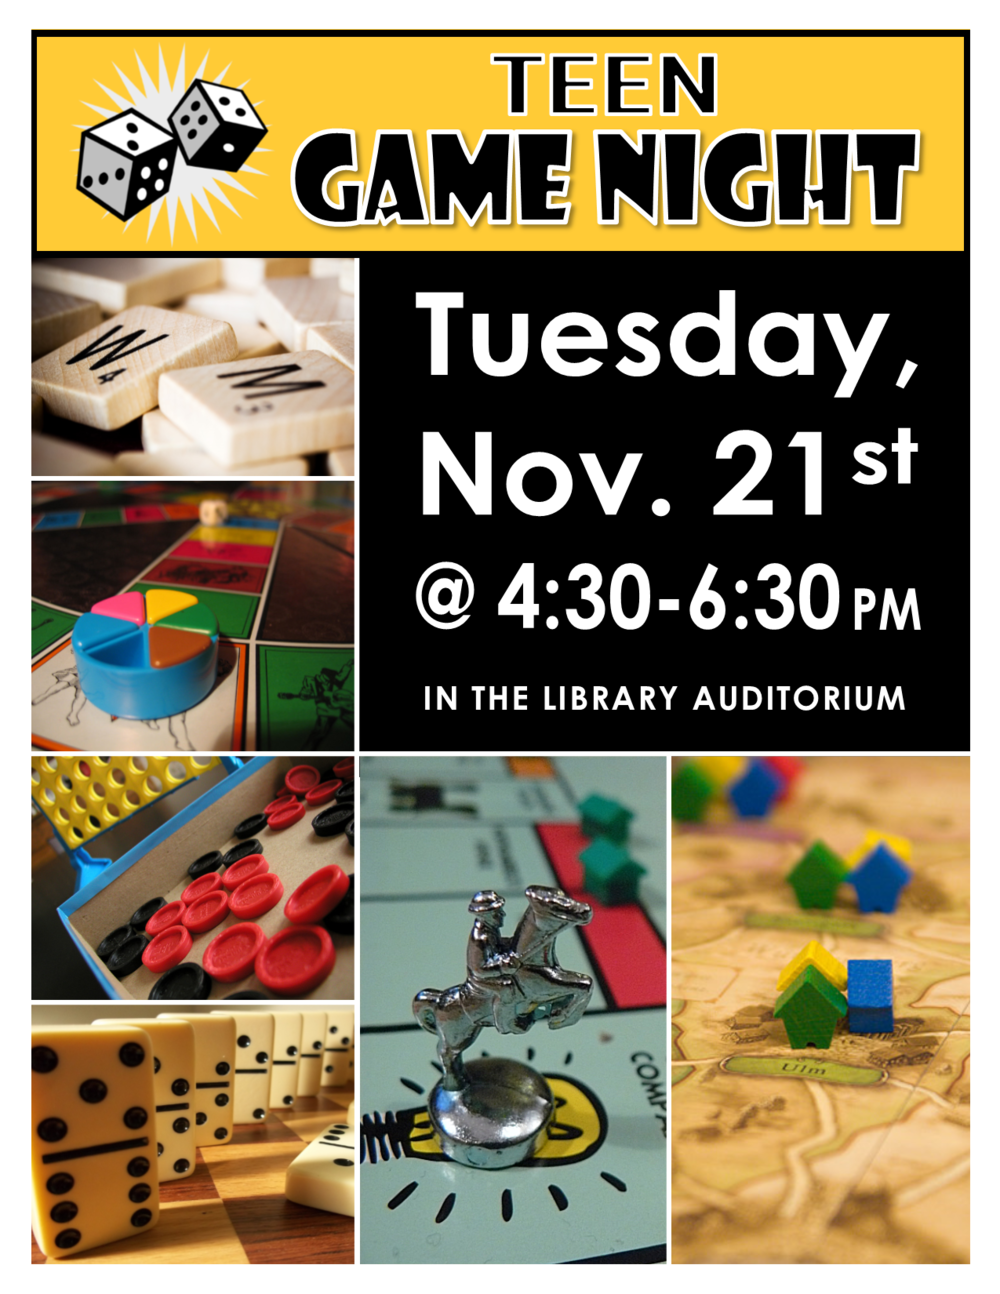 Join us in the Library Auditorium for some classic gaming, including board, card, dice & more! Feel free to bring your own games to share and play!